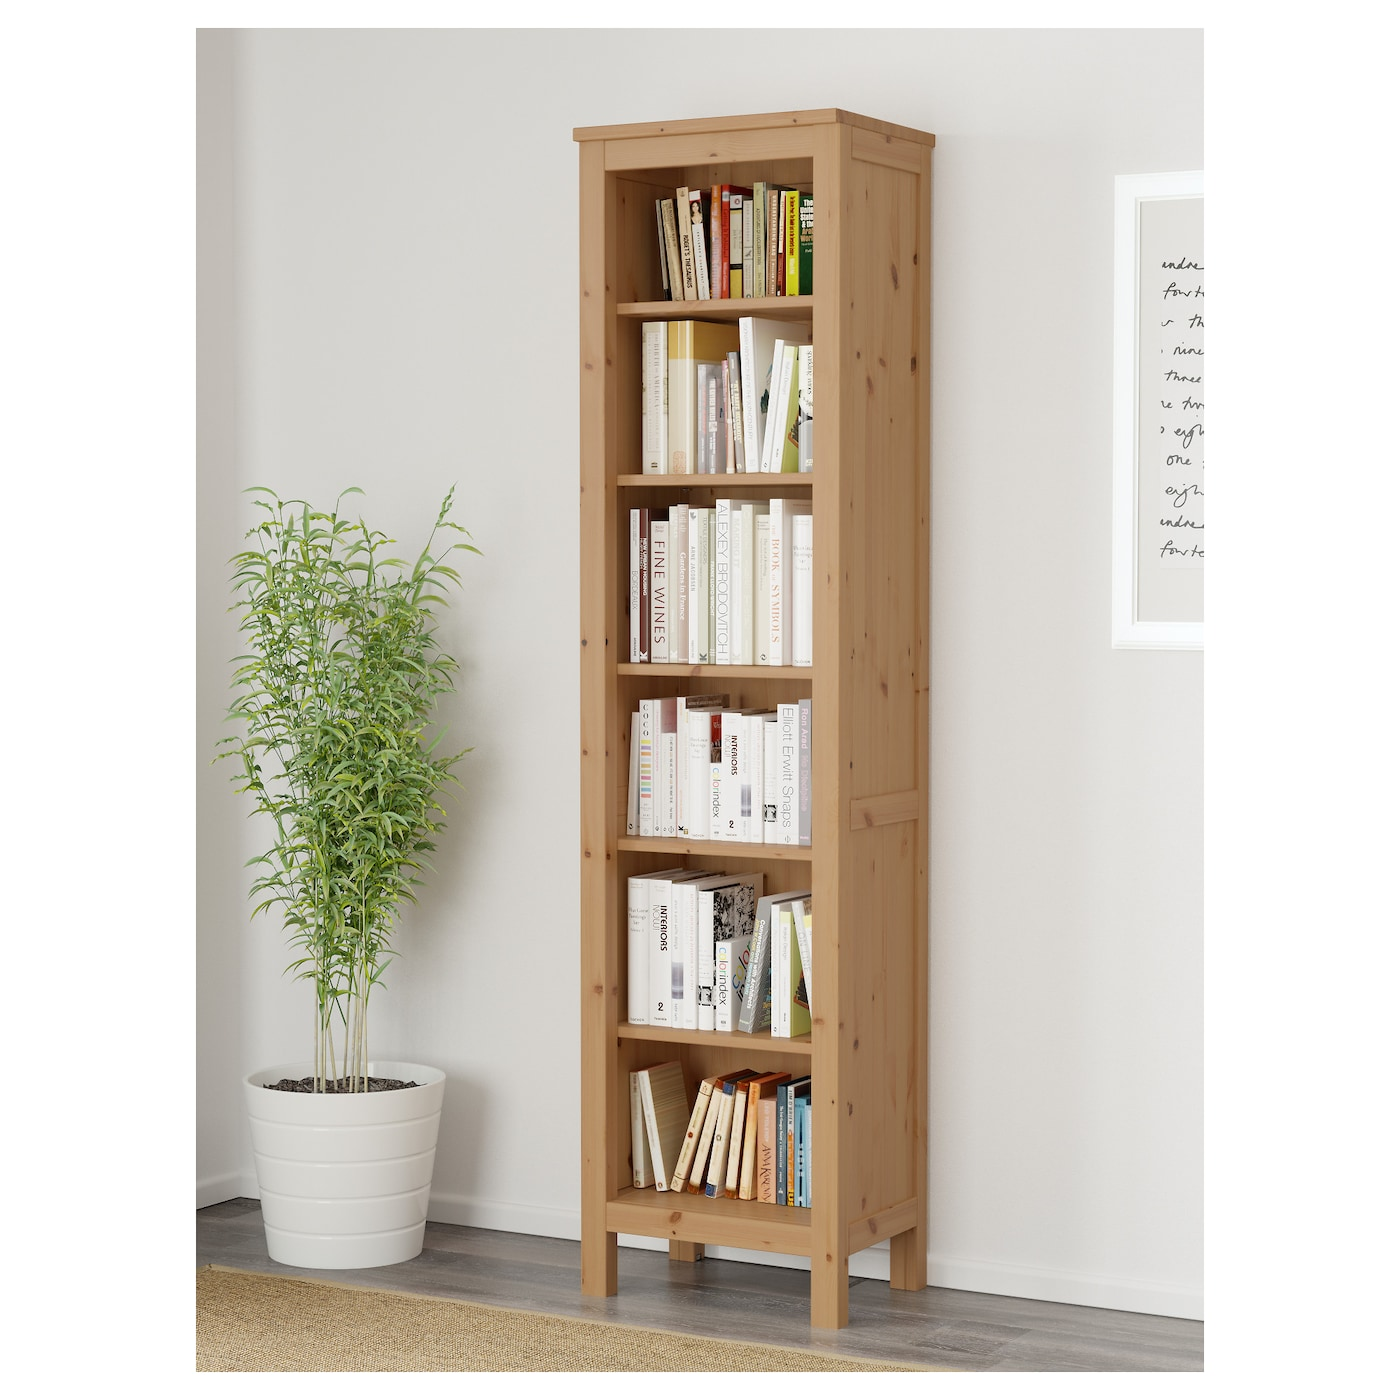 hemnes bookcase light brown 49 x 197 cm ikea. Black Bedroom Furniture Sets. Home Design Ideas